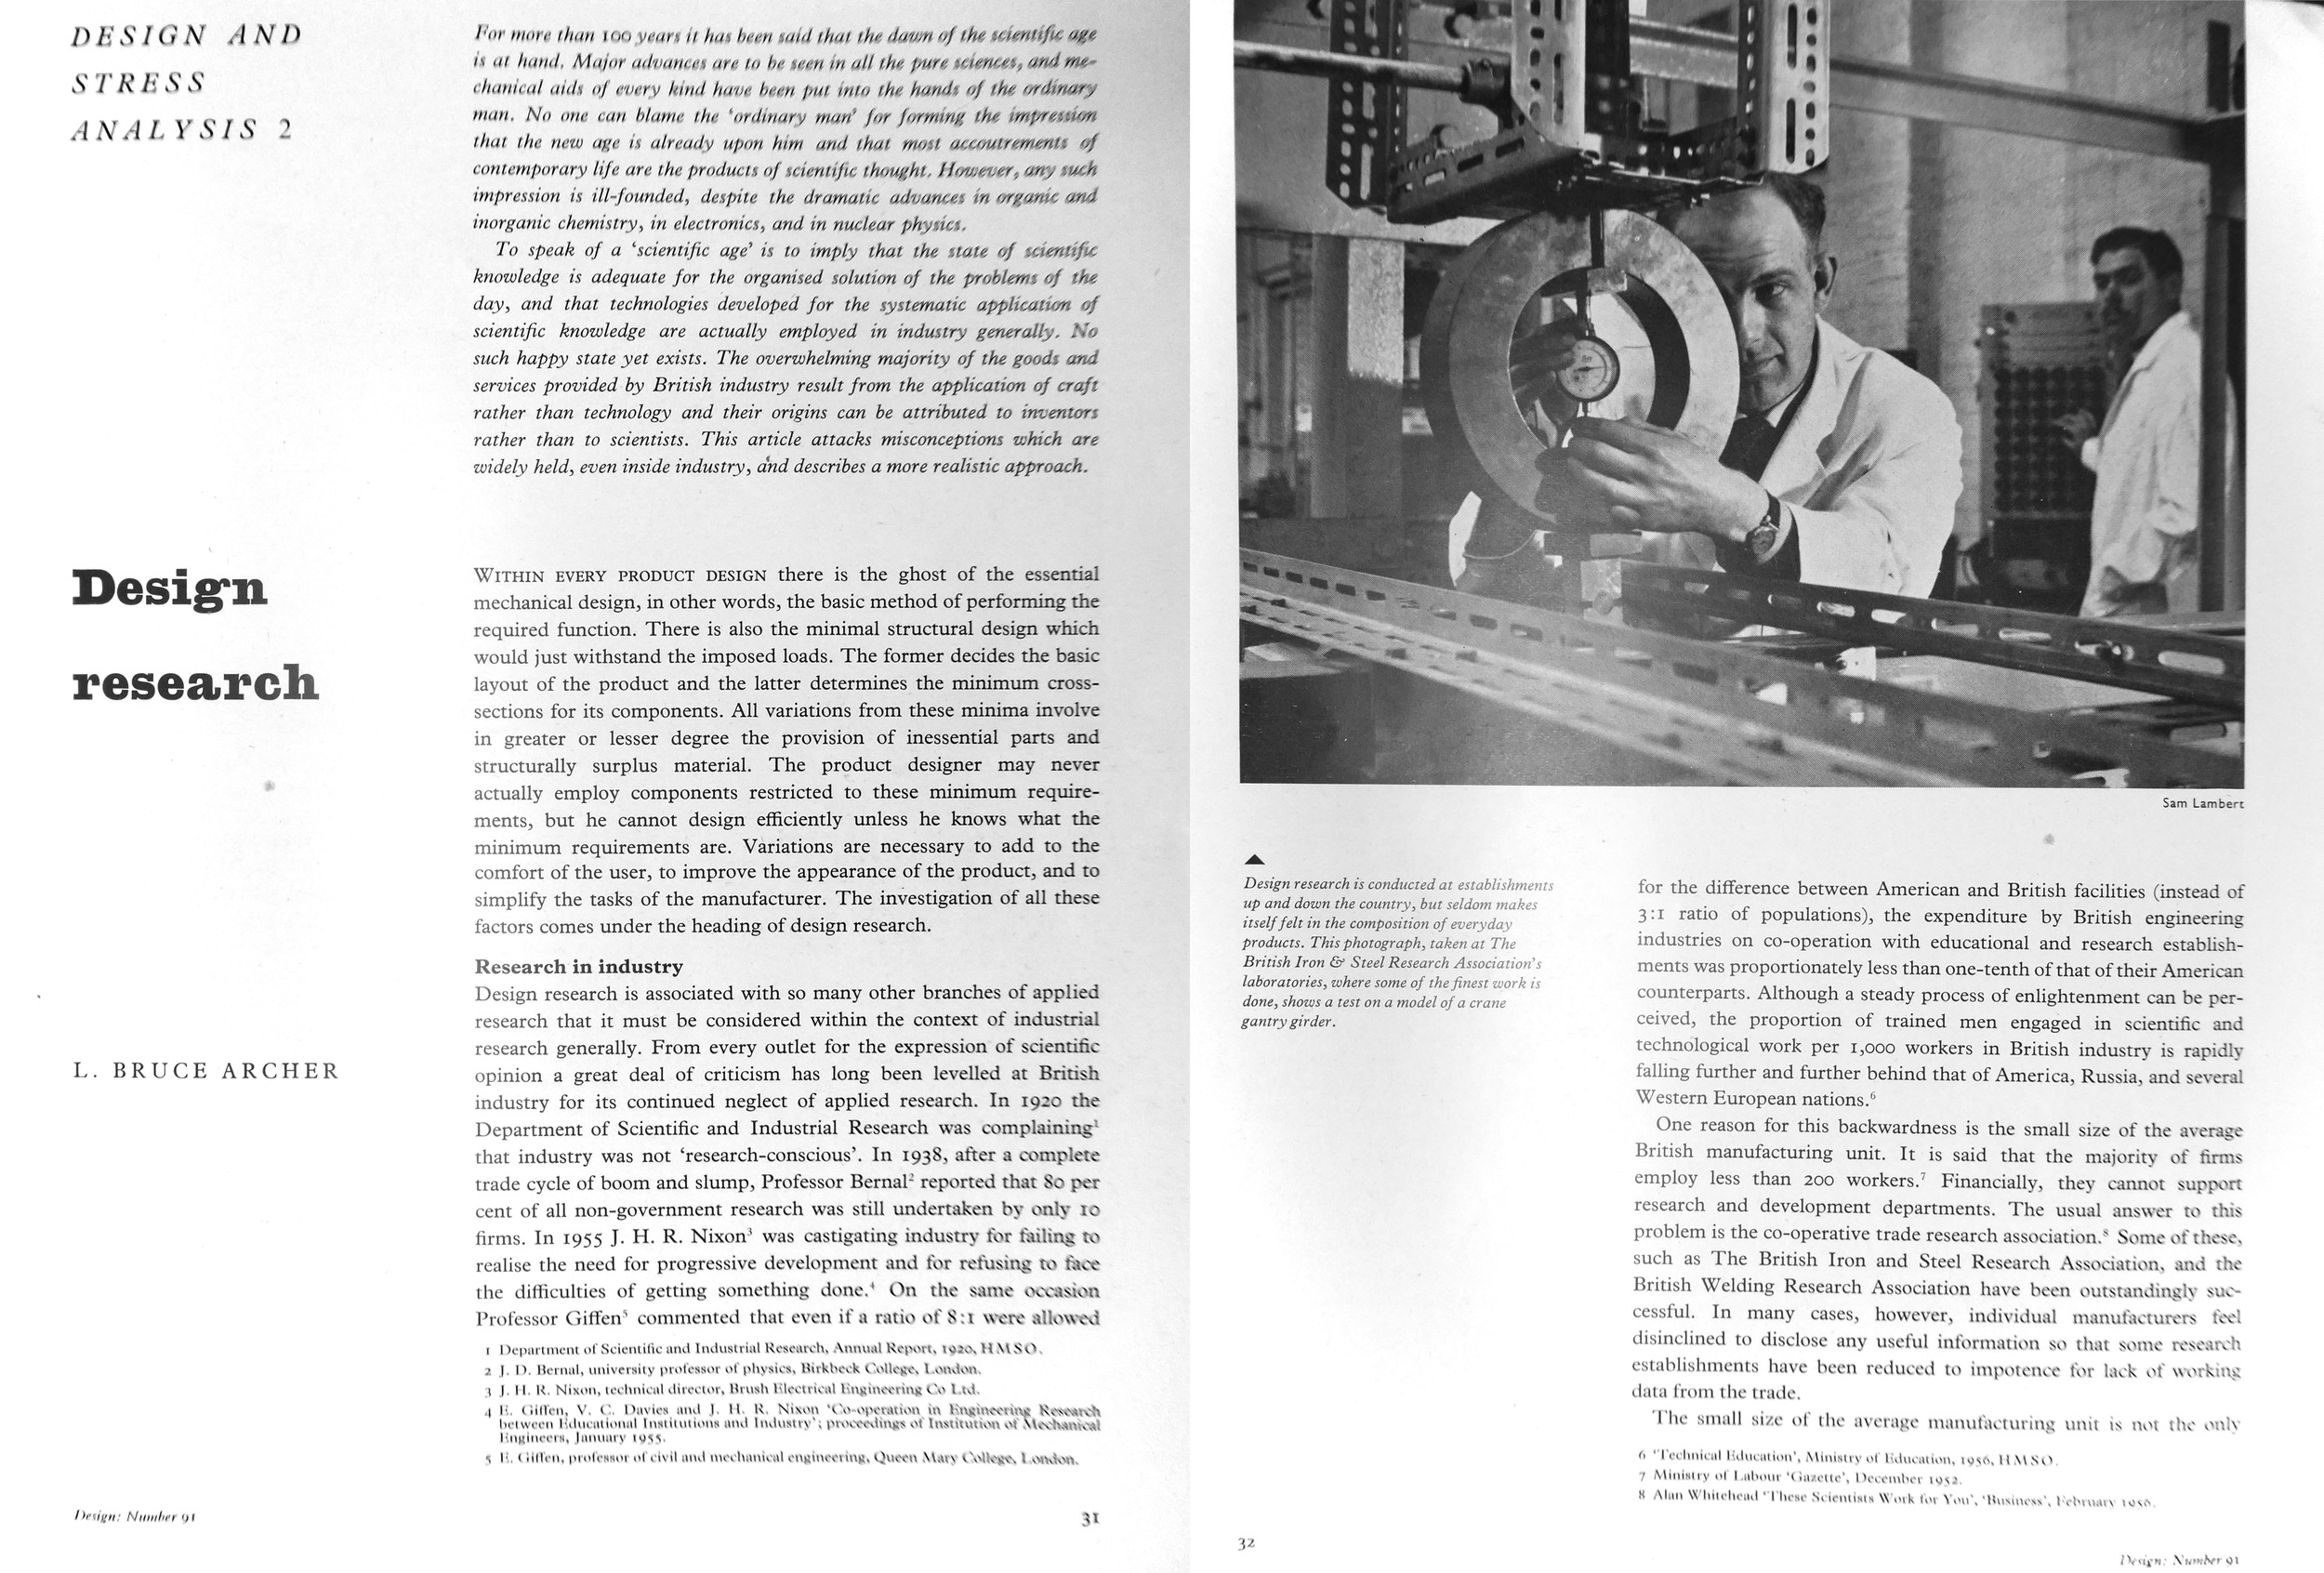 DDR_Design-Research_July_1956.jpg